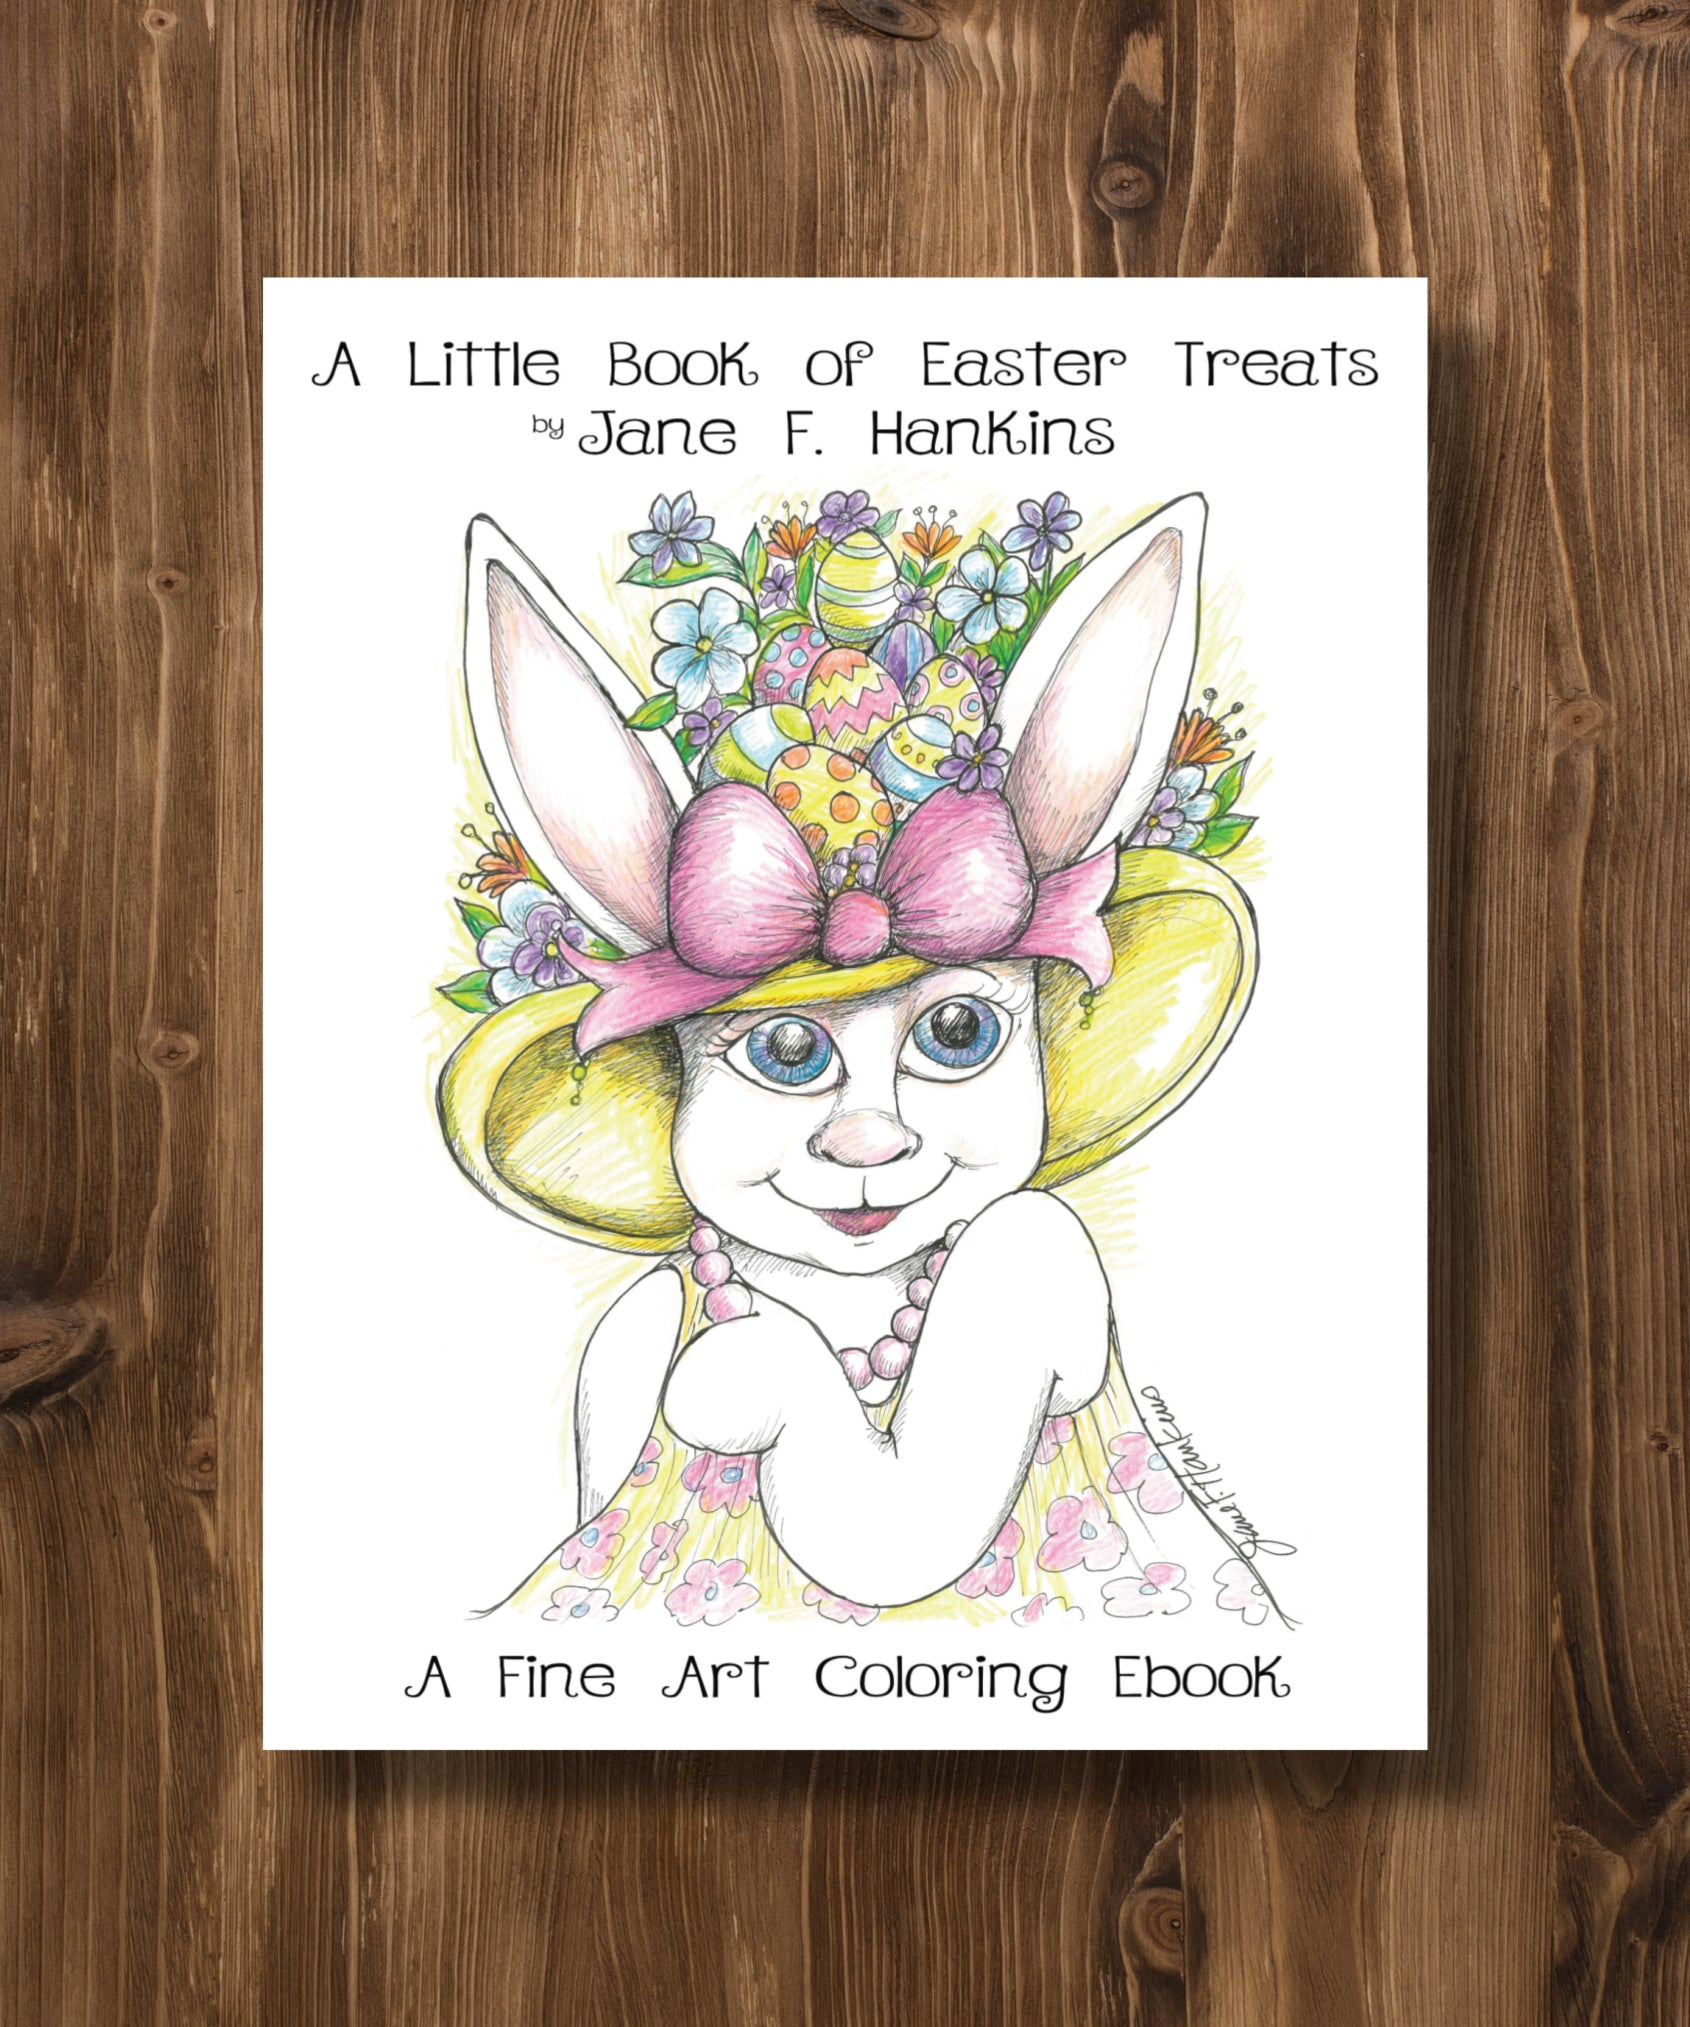 A Little Book of Easter Treats (Digital PDF)